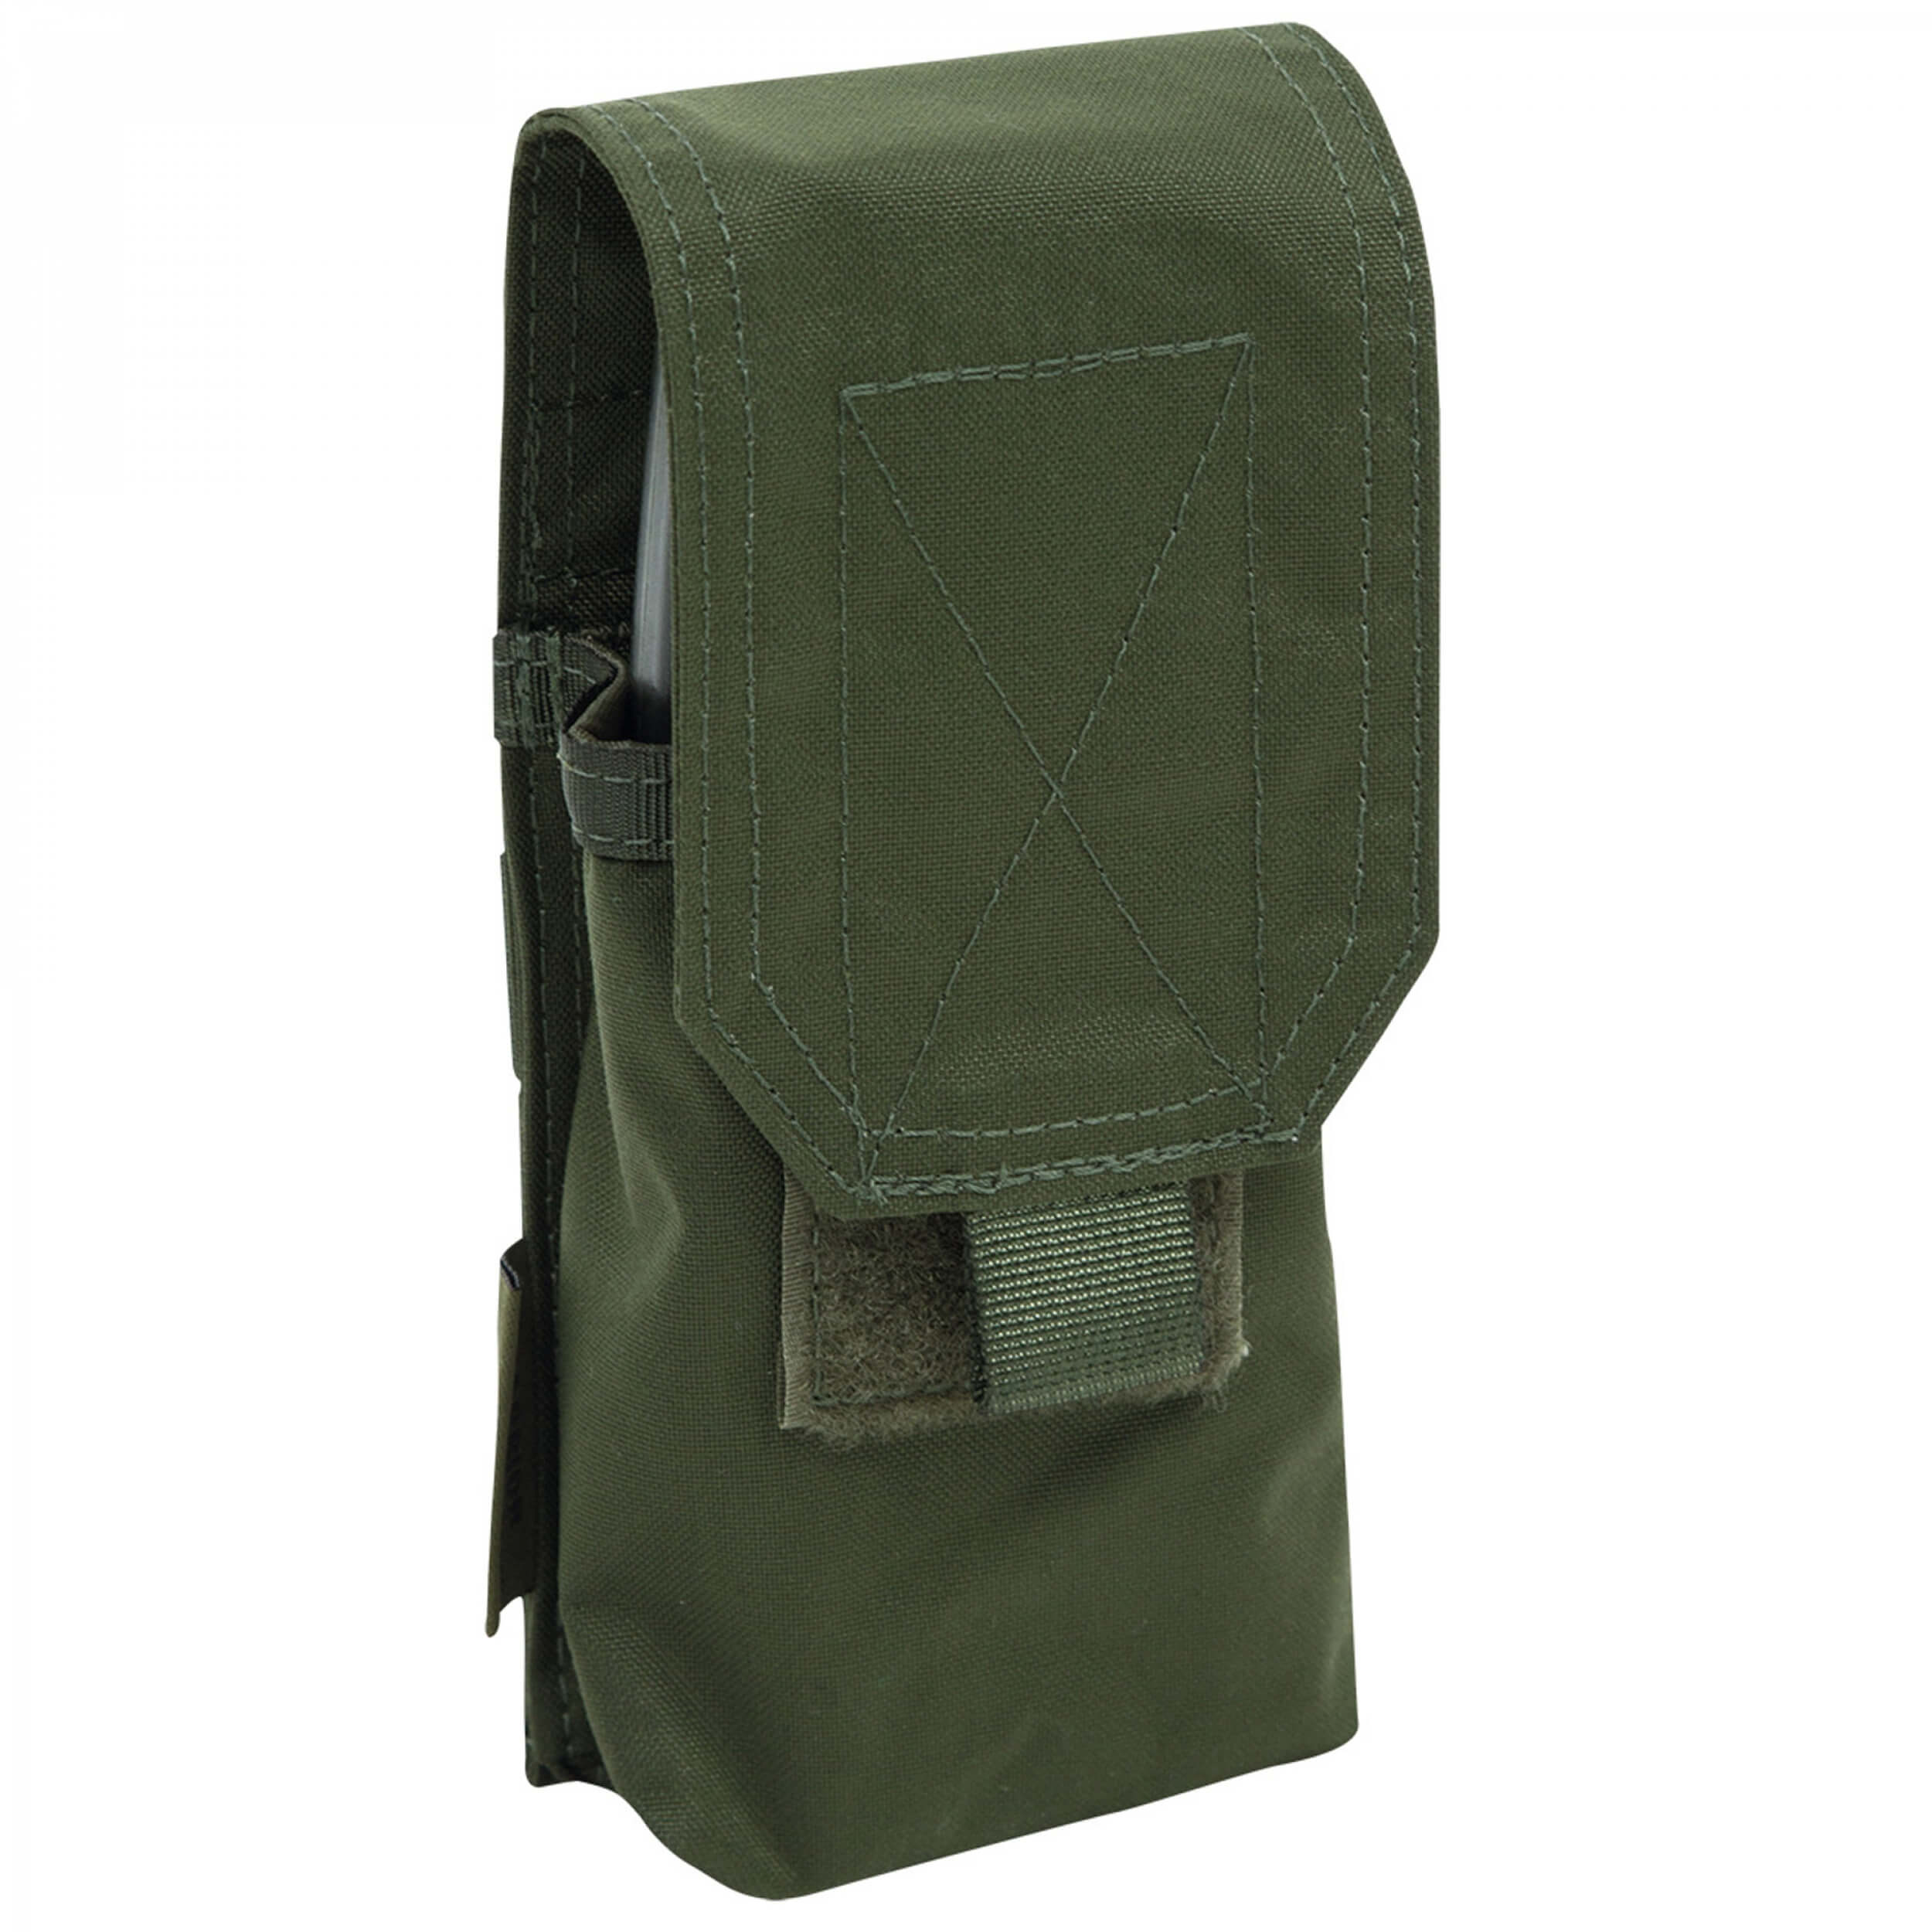 Warrior Single Covered G36 MAG Pouch oliv drab